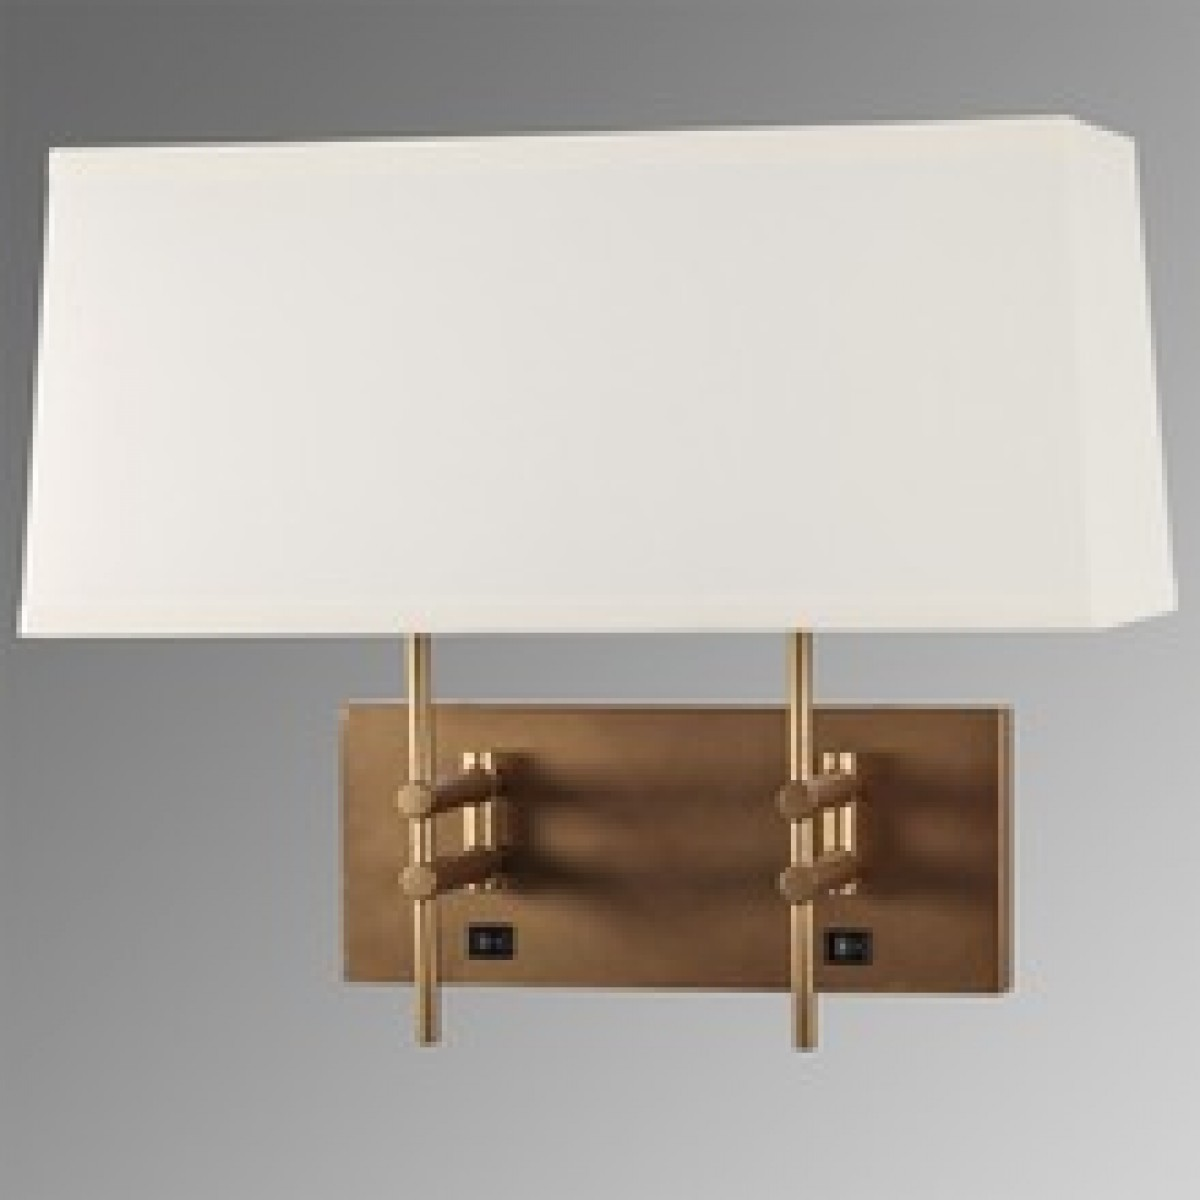 Hotel Guest Room Wall Light Sconce Lamp Fabric And Burshed